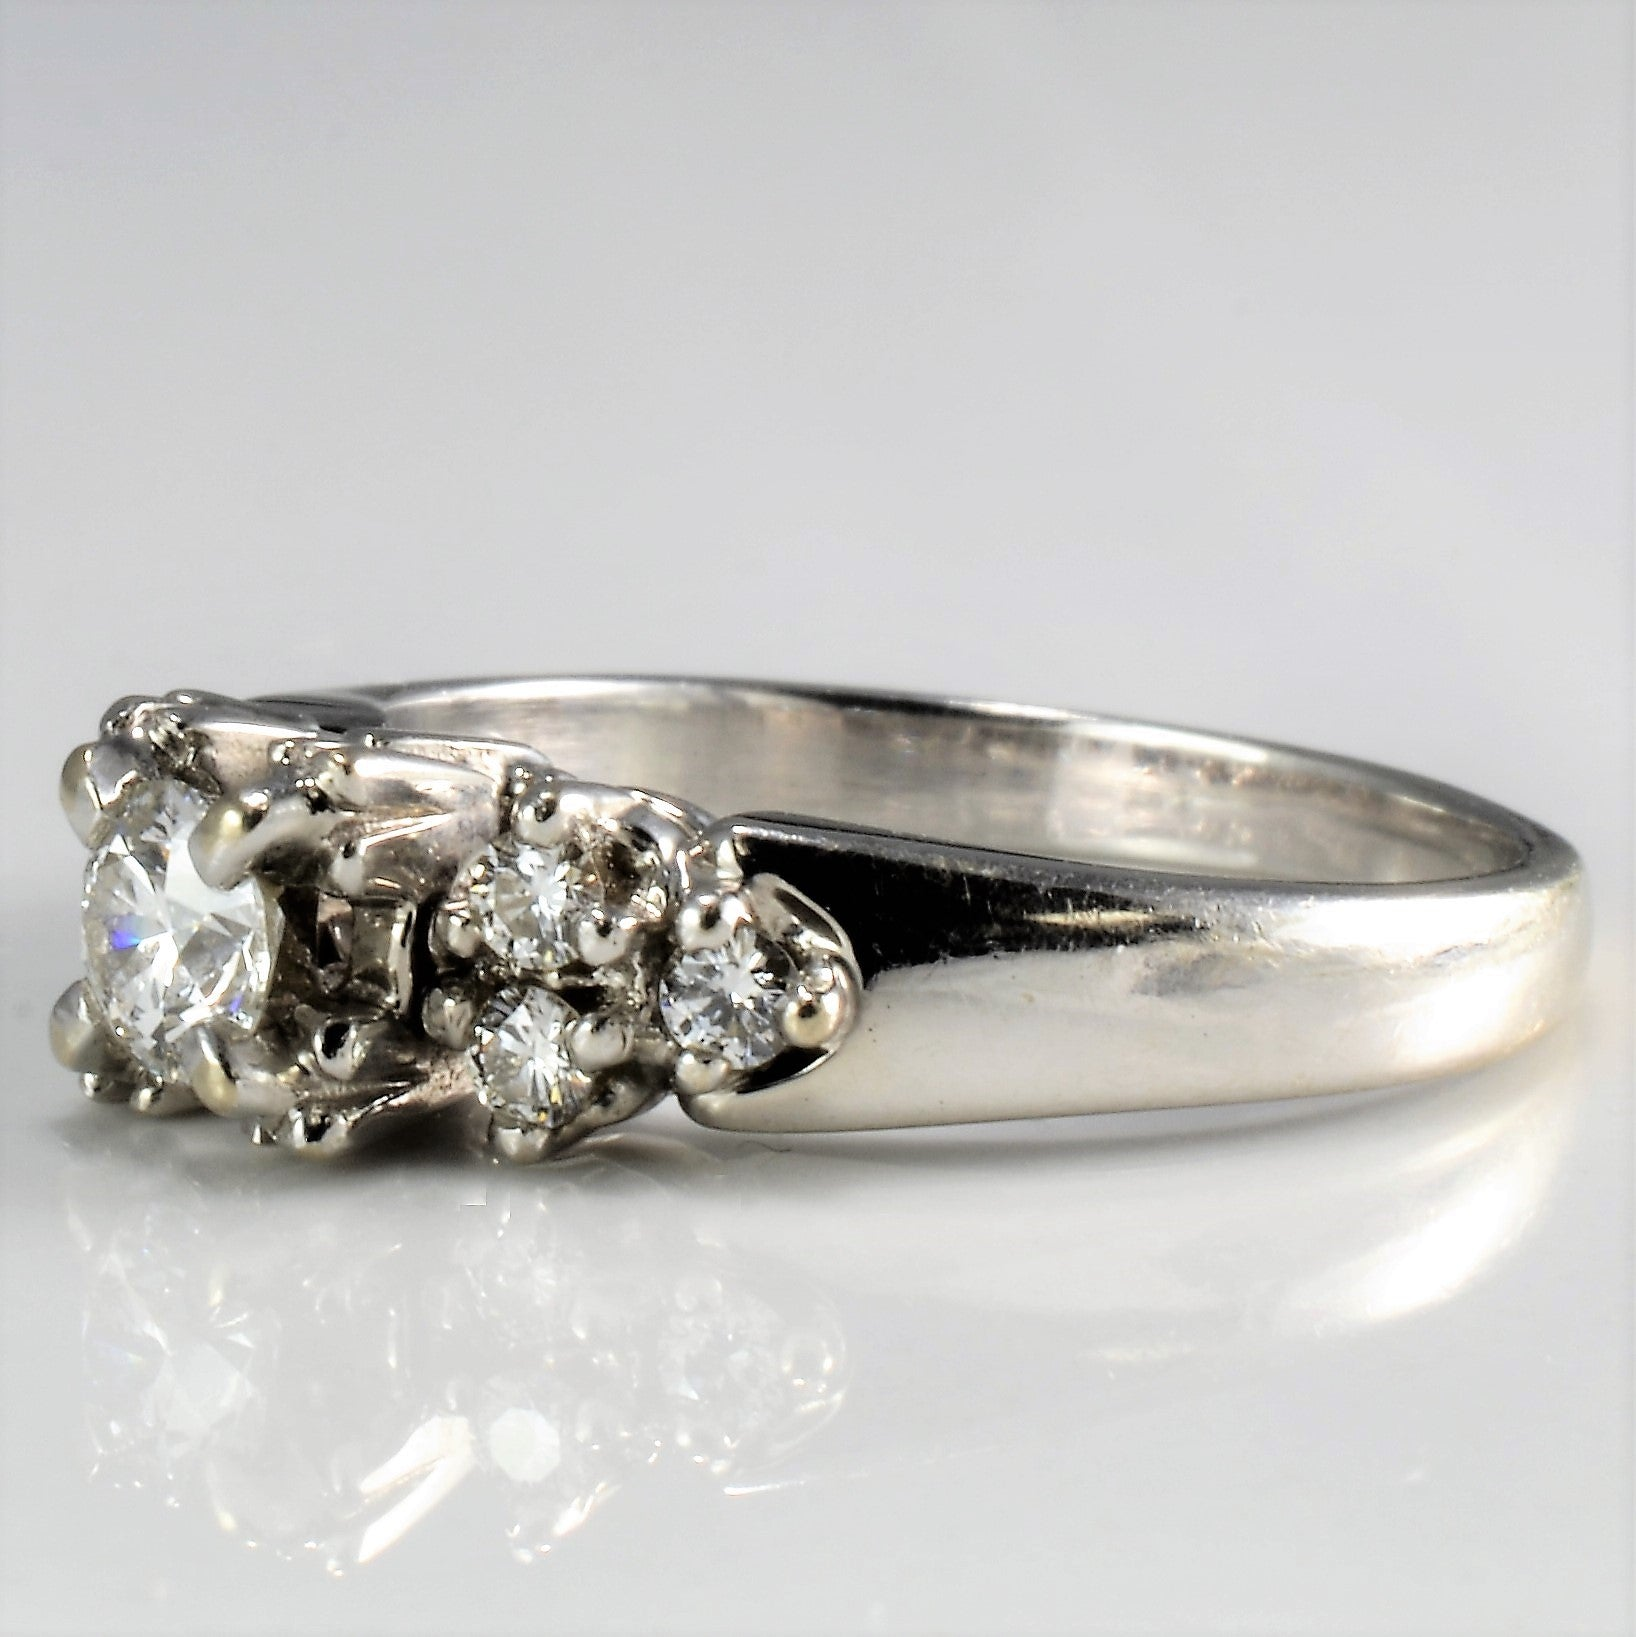 dcafa9b17ec3f Solitaire with Accents Diamond Engagement Ring | 0.35 ctw, SZ 5.5